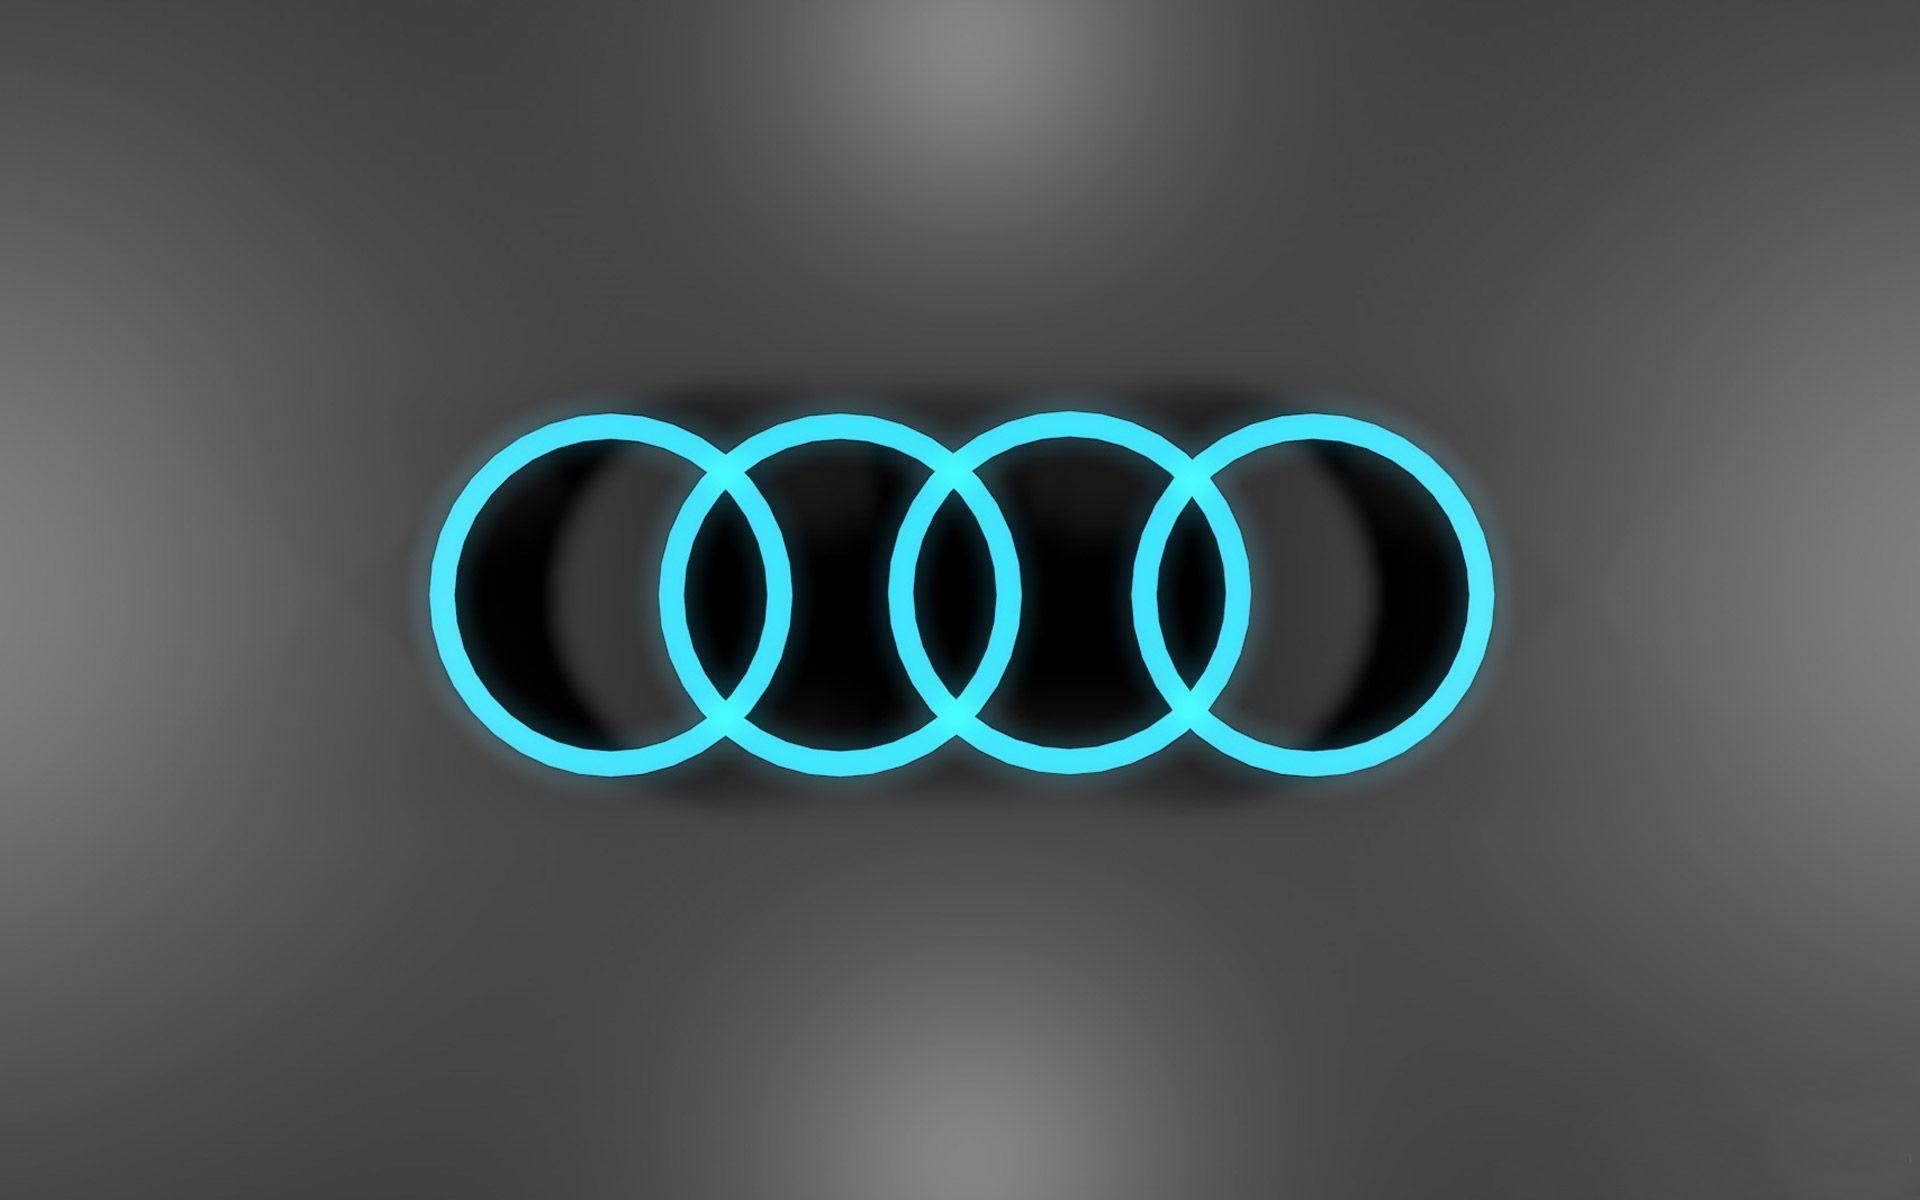 audi logo hd wallpapers free | Desktop Backgrounds for Free HD ...